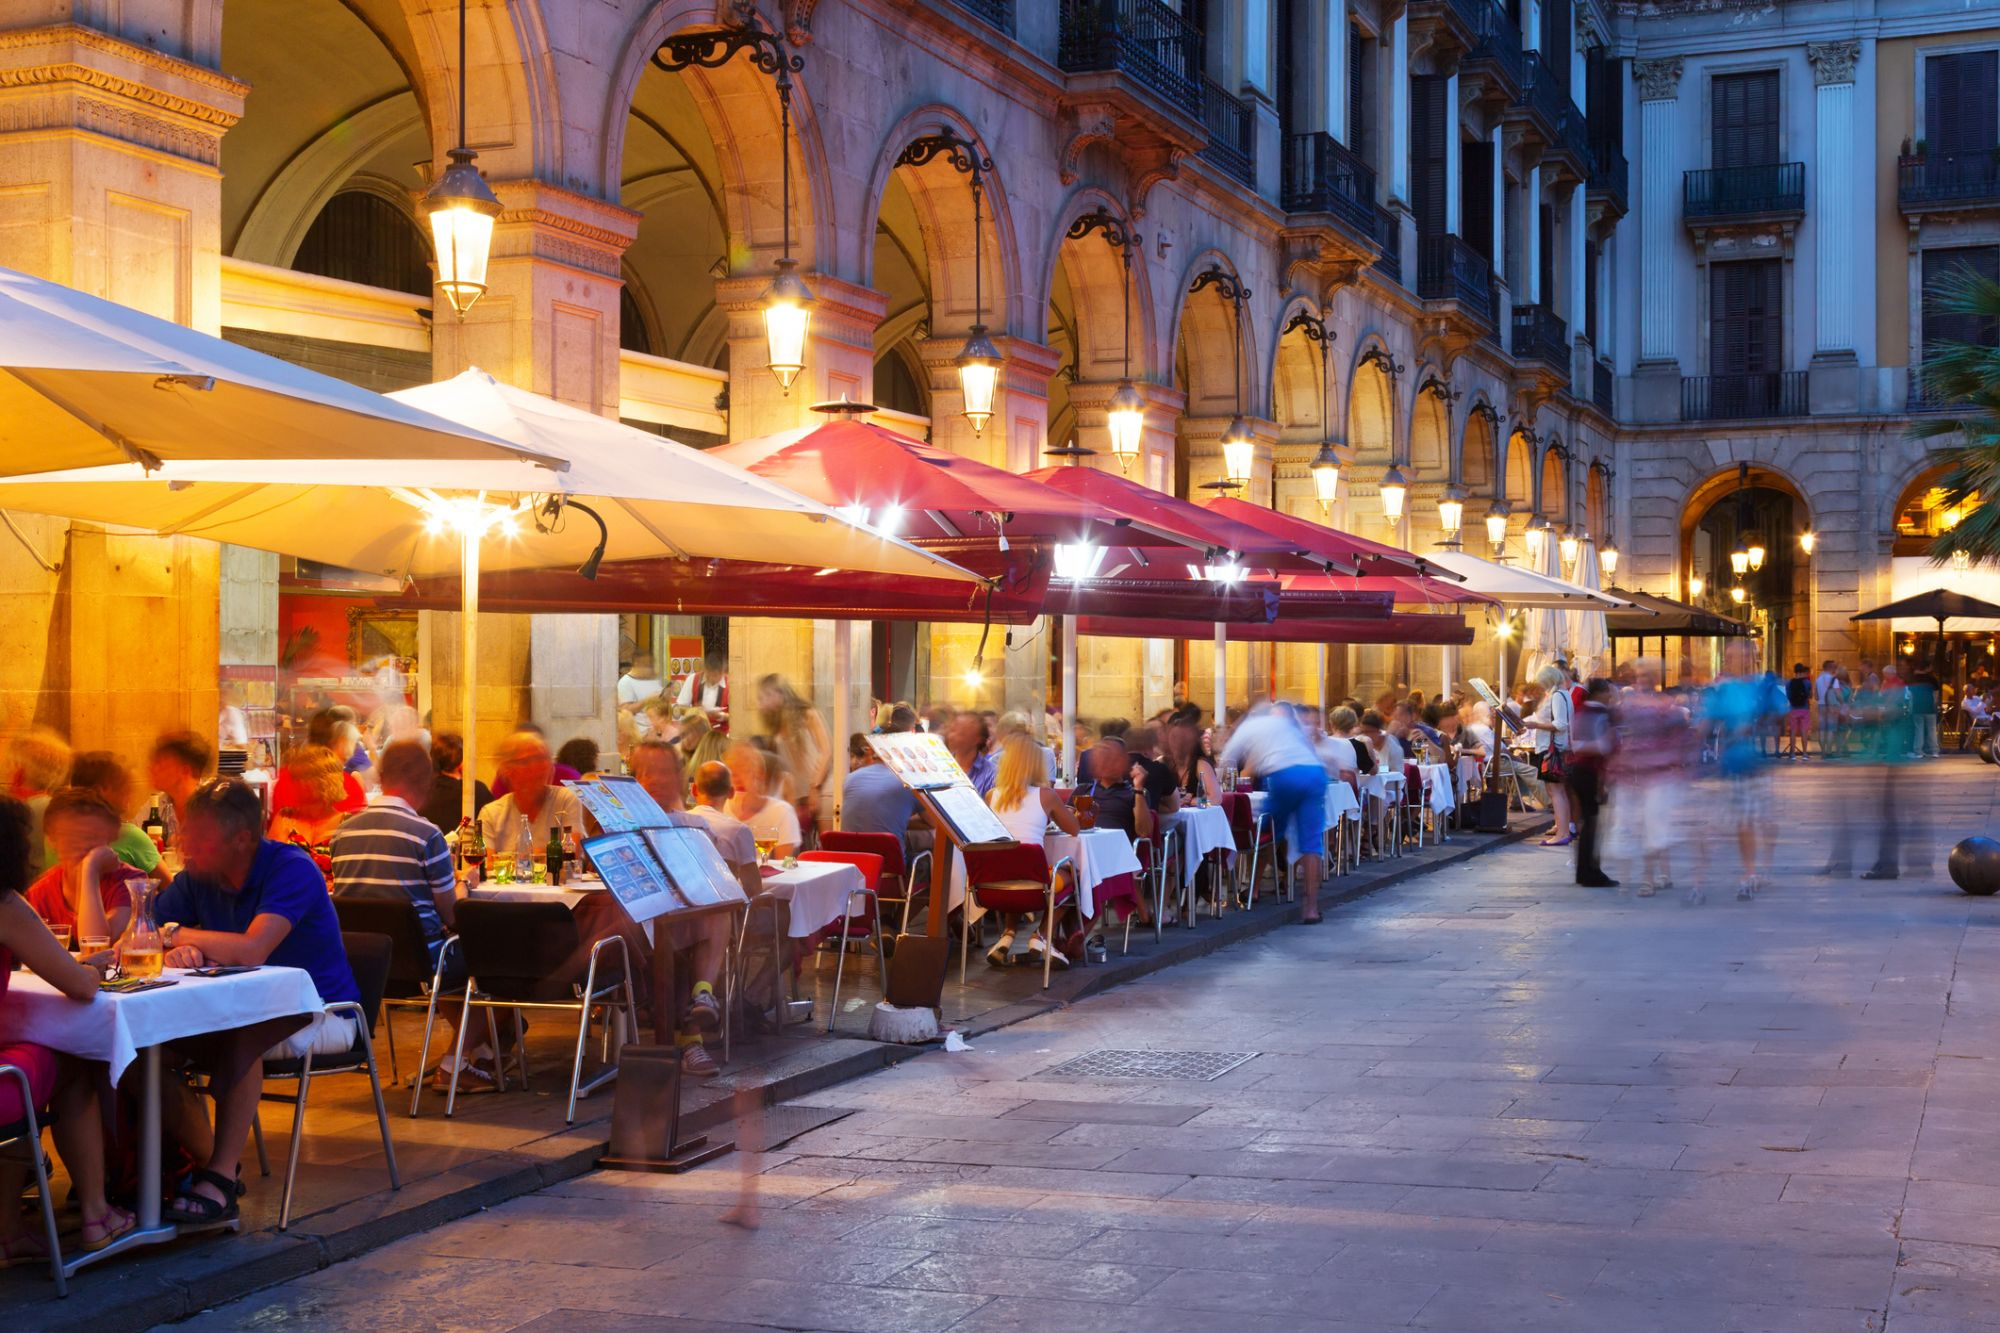 5 Ways European Restauranteurs Can Increase Business